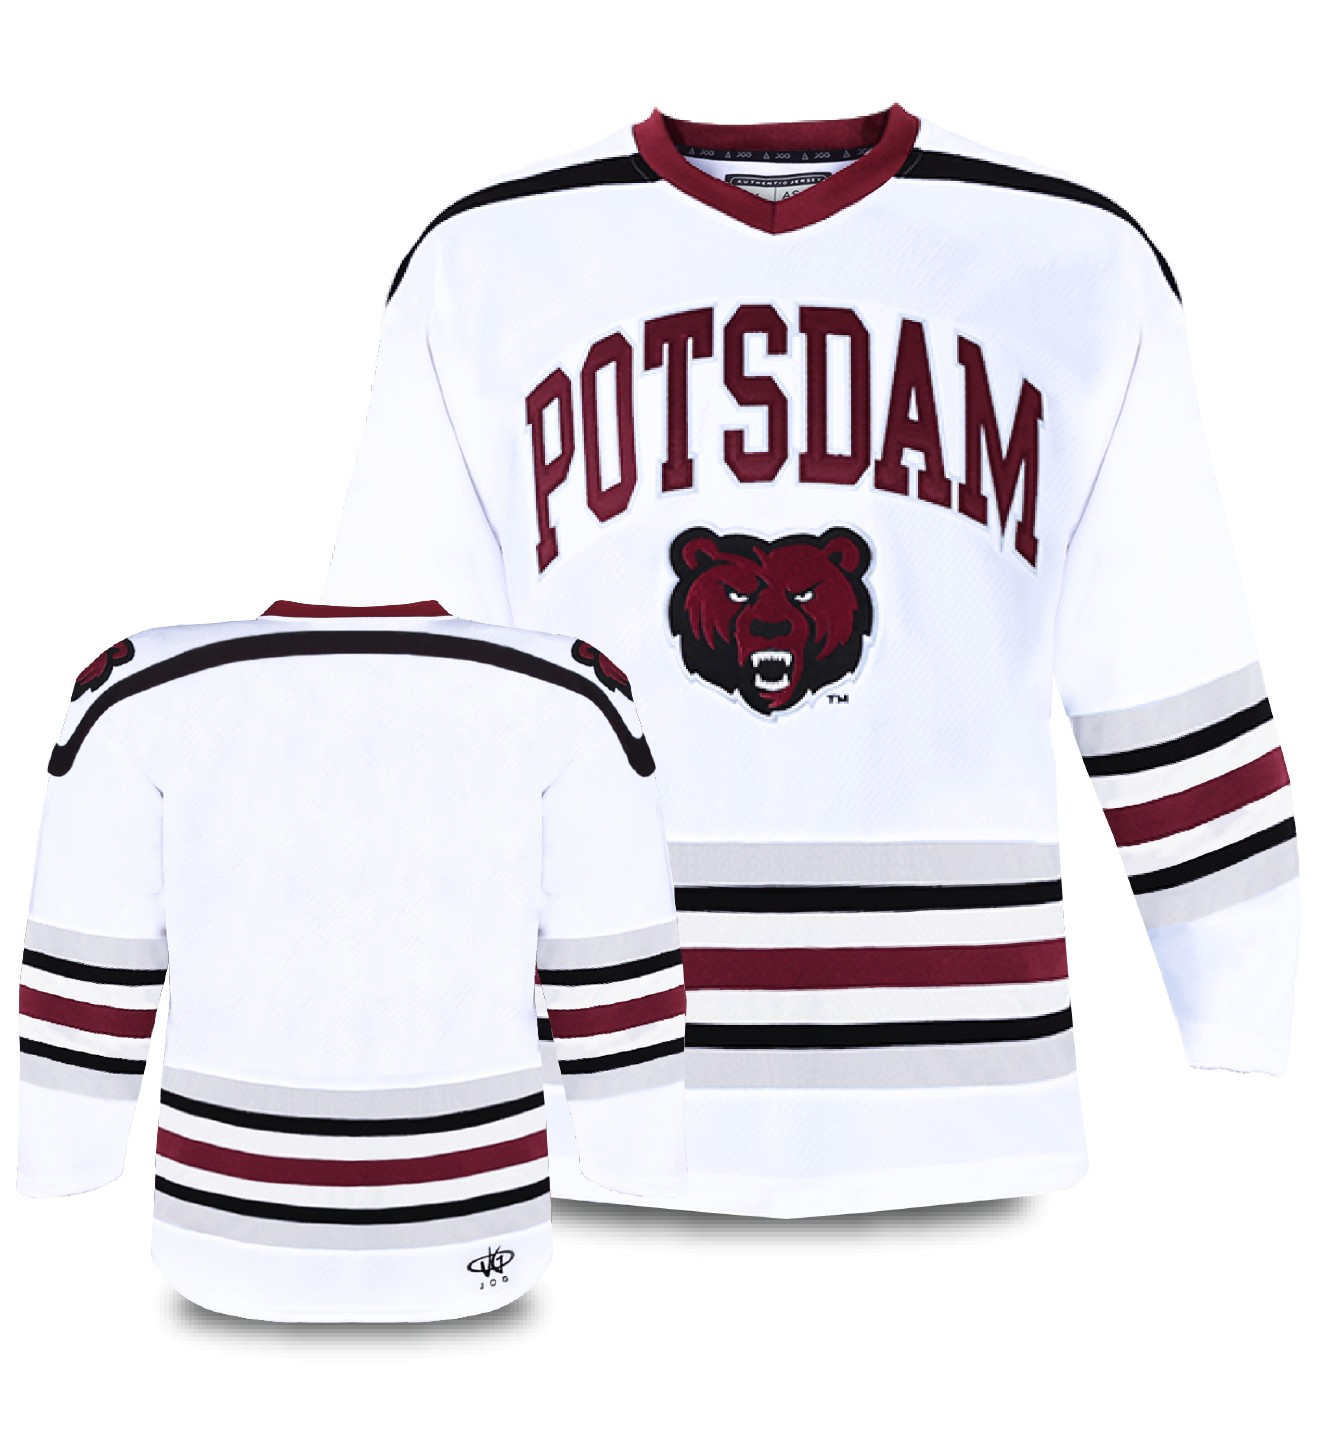 Custom hockey jersey for the men's and women's ice hockey teams. NHL jersey quality ice hockey jersey.